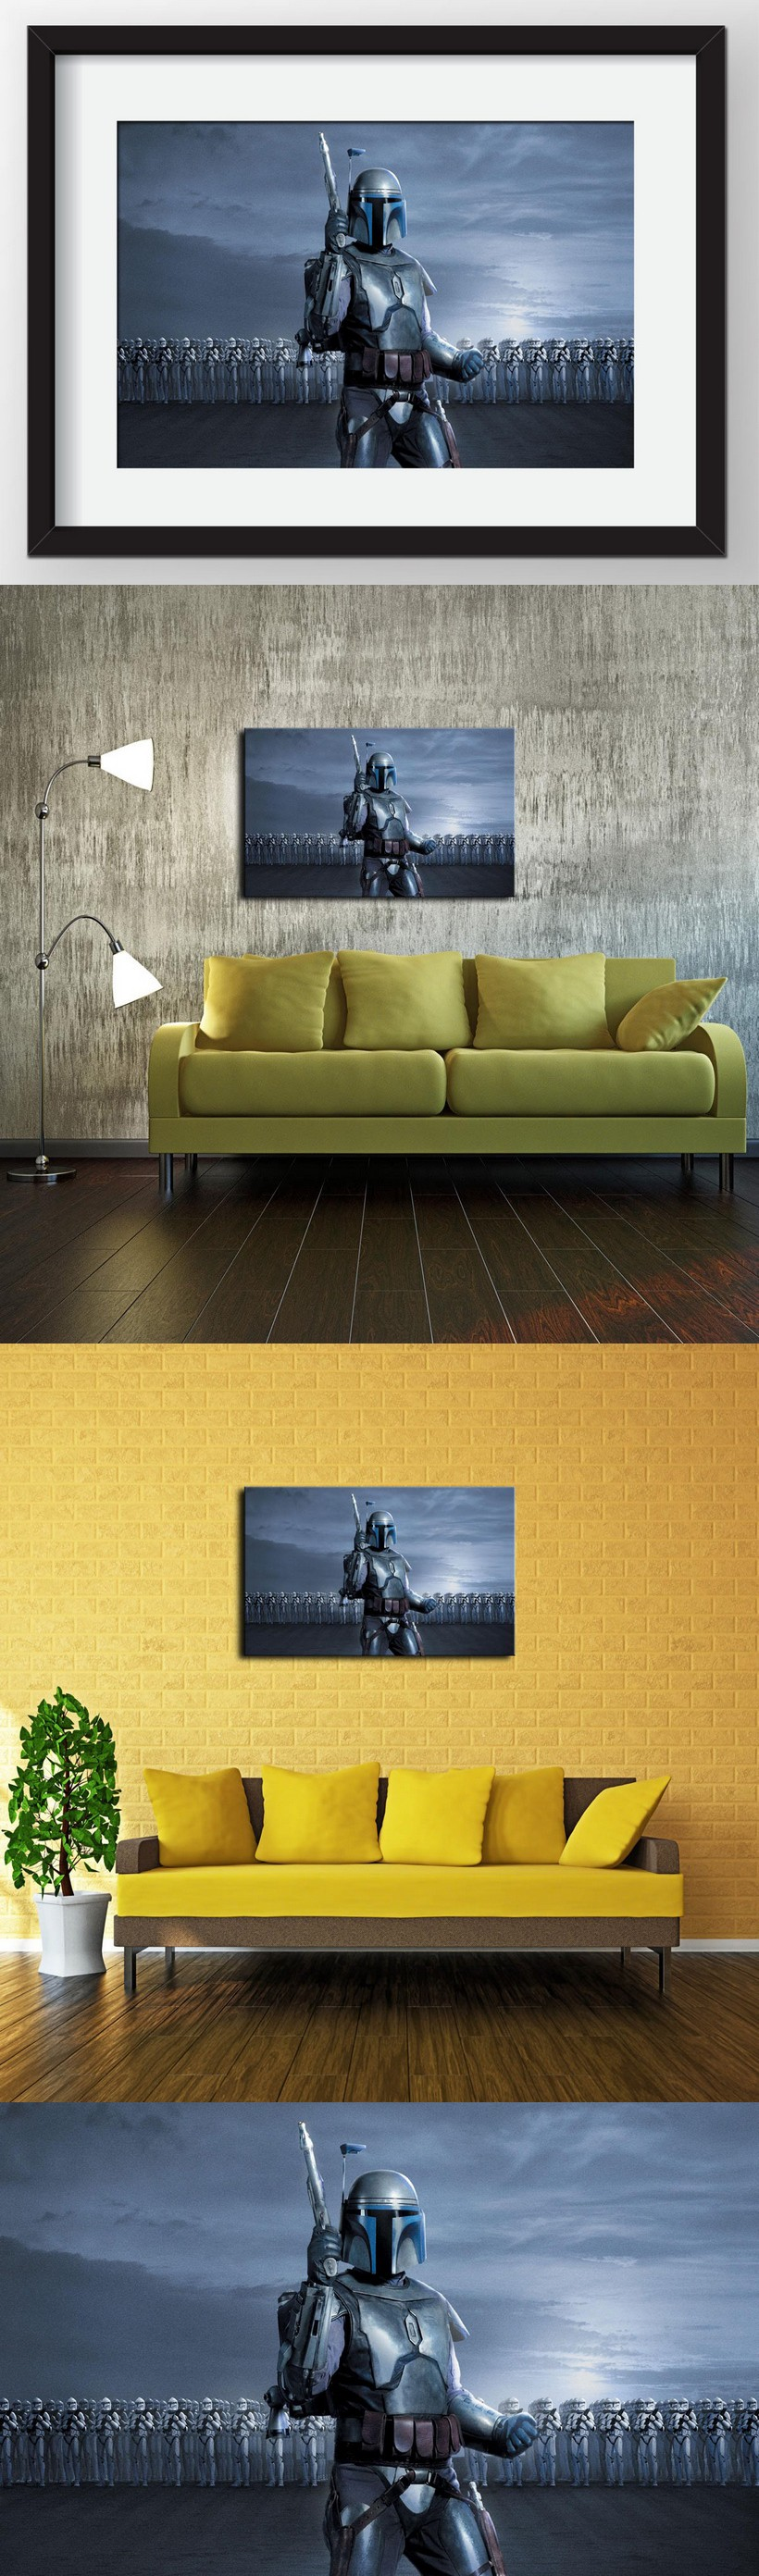 Canvas Prints Wall Art Decorative Painting Western Home Decor Which ...